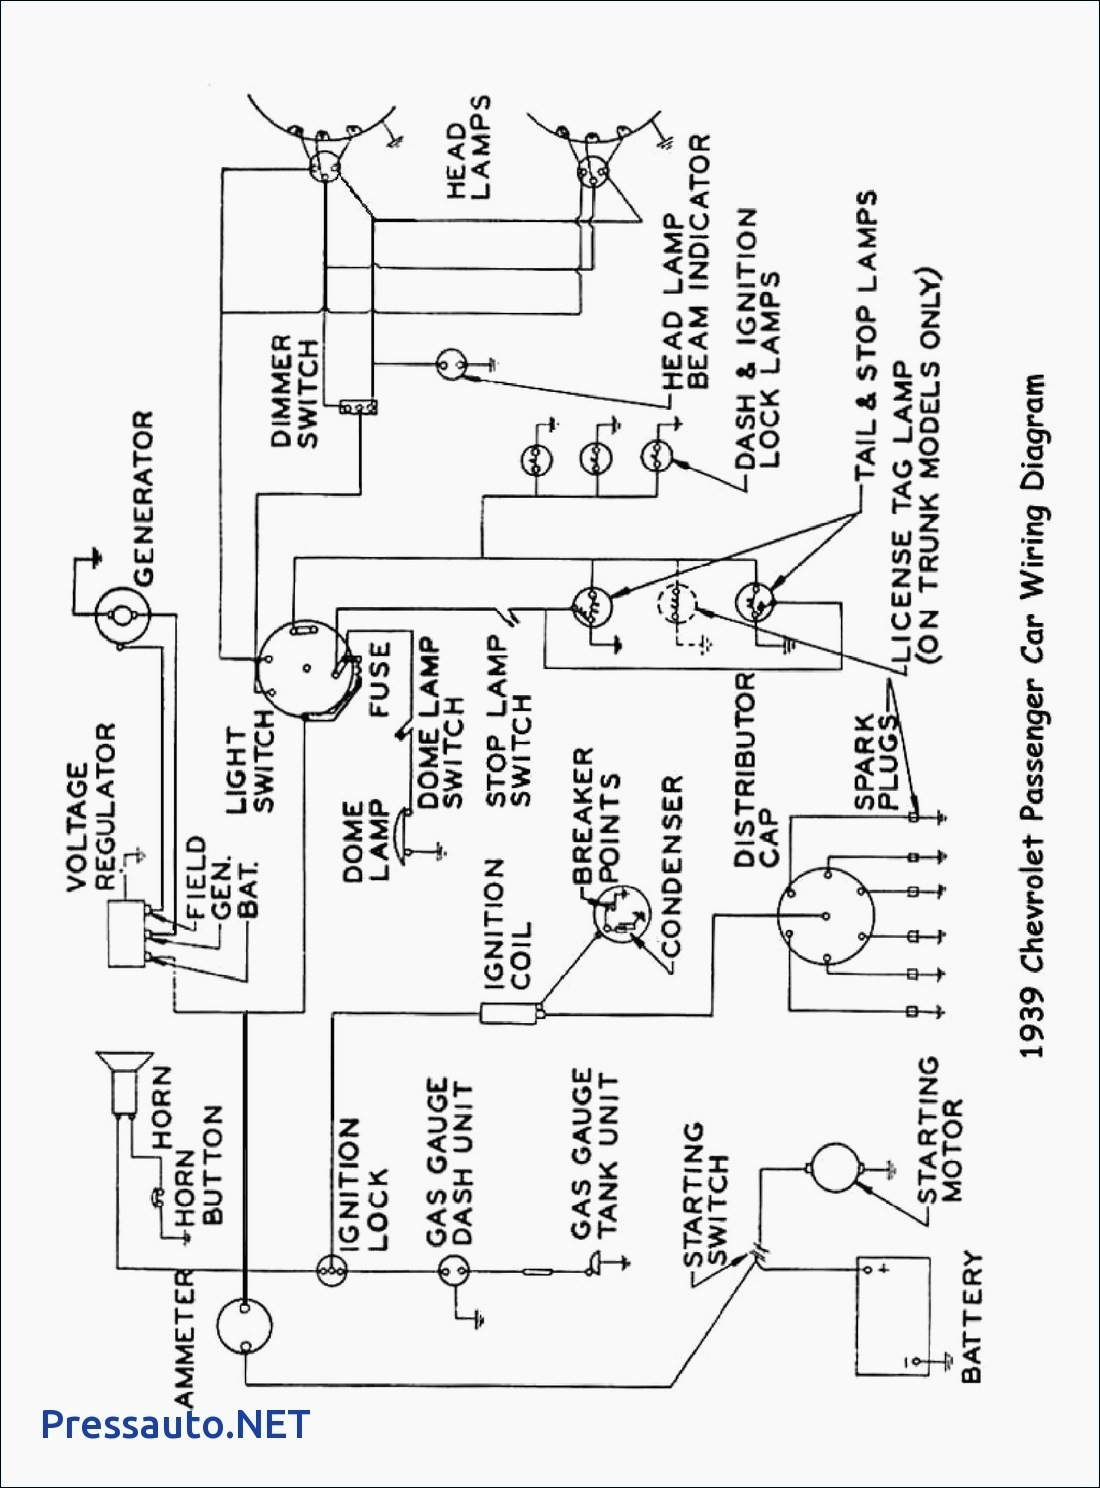 DIAGRAM] John Deere F925 Wiring Diagram FULL Version HD Quality Wiring  Diagram - ENGINEHVOER.PHOTOGRAPHE-DESCHANEL.FRenginehvoer photographe-deschanel fr